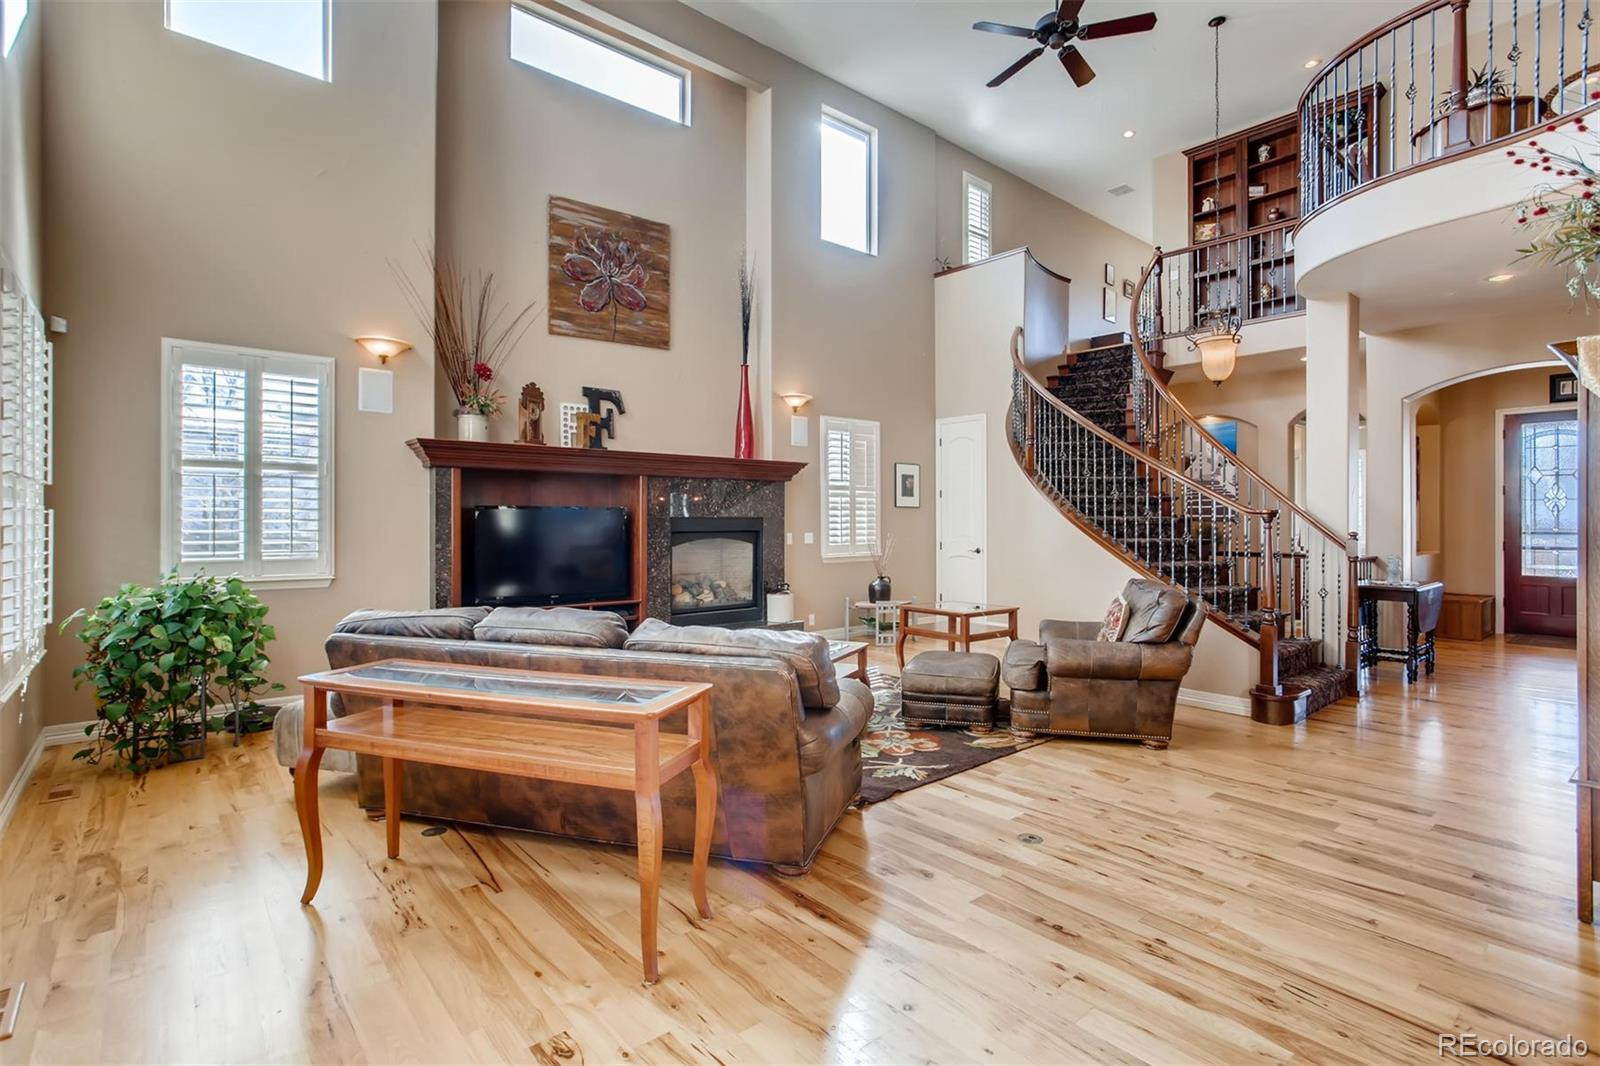 MLS# 8433922 - 7 - 3290 S Corona Street, Englewood, CO 80113